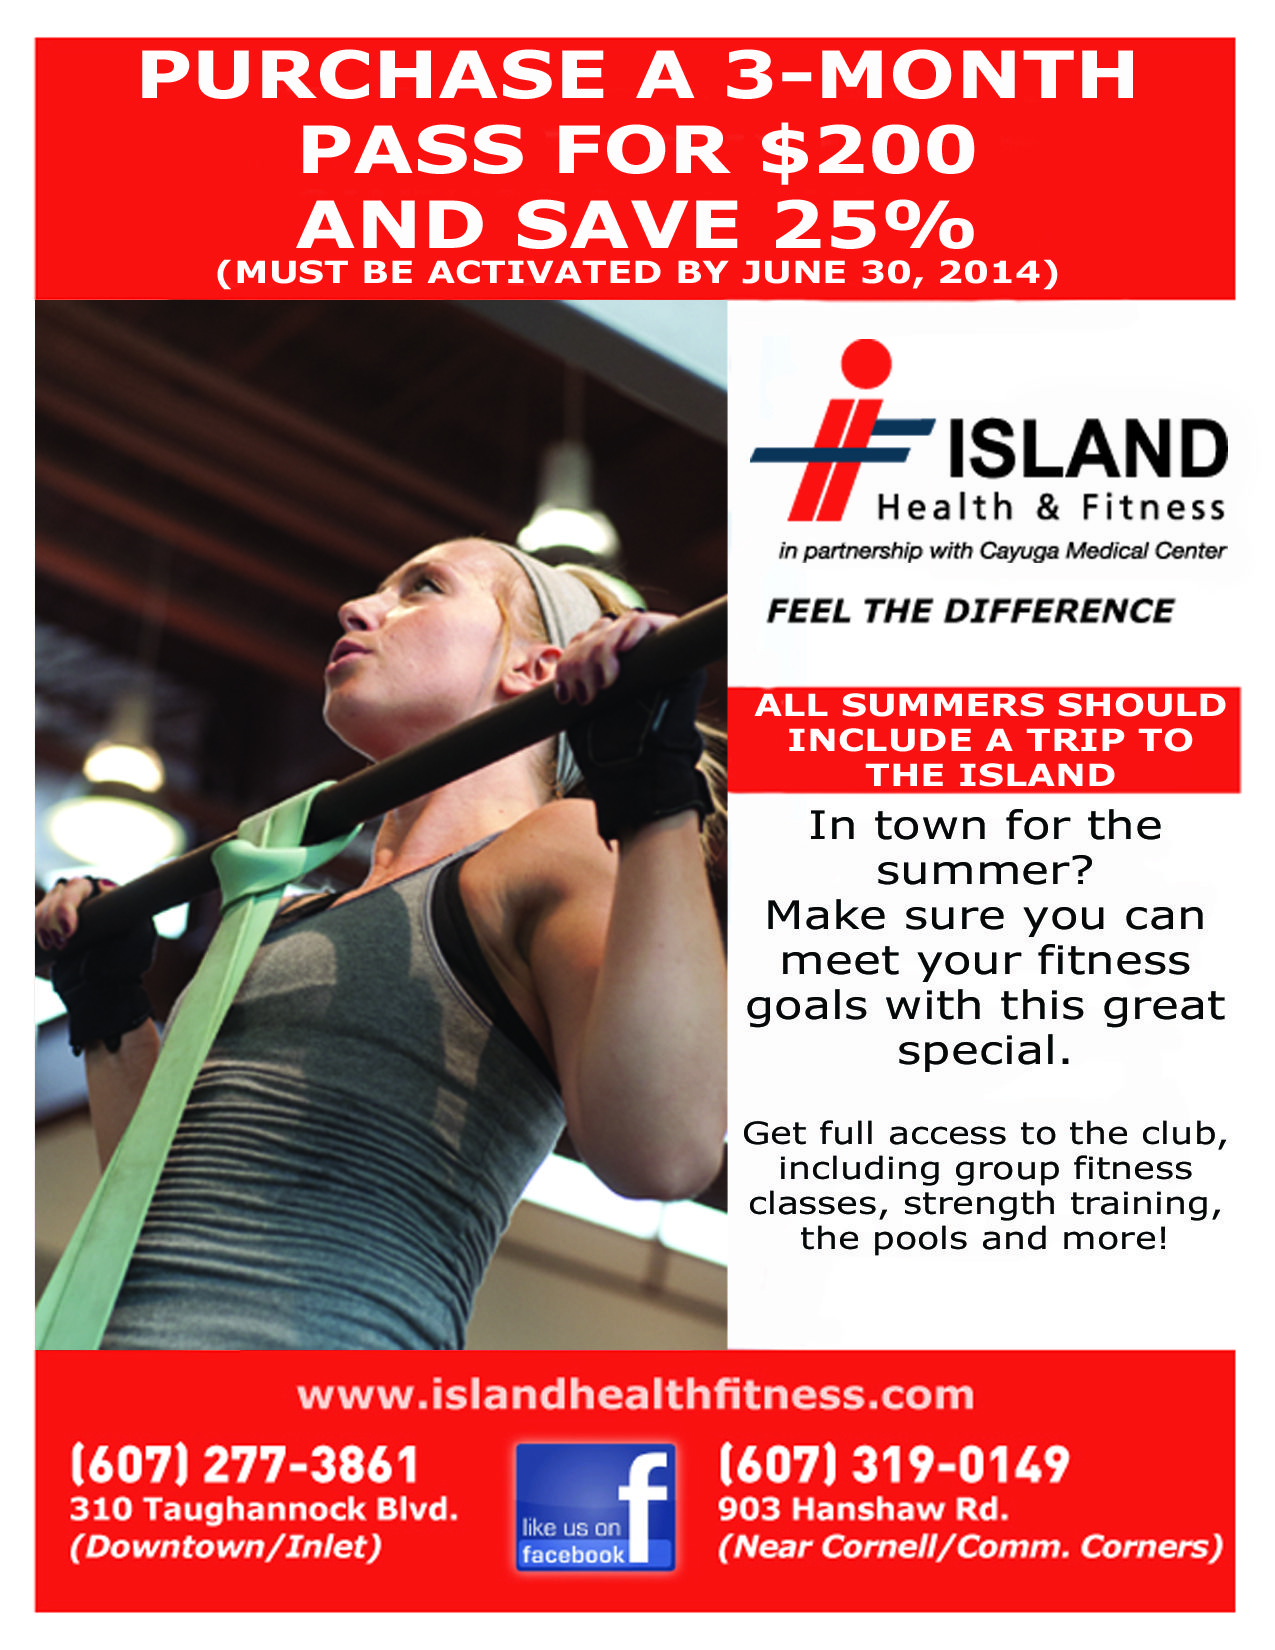 Cornell Fitness Classes : cornell, fitness, classes, Advantage, Discount, Three-month, Pass., Health, Fitness,